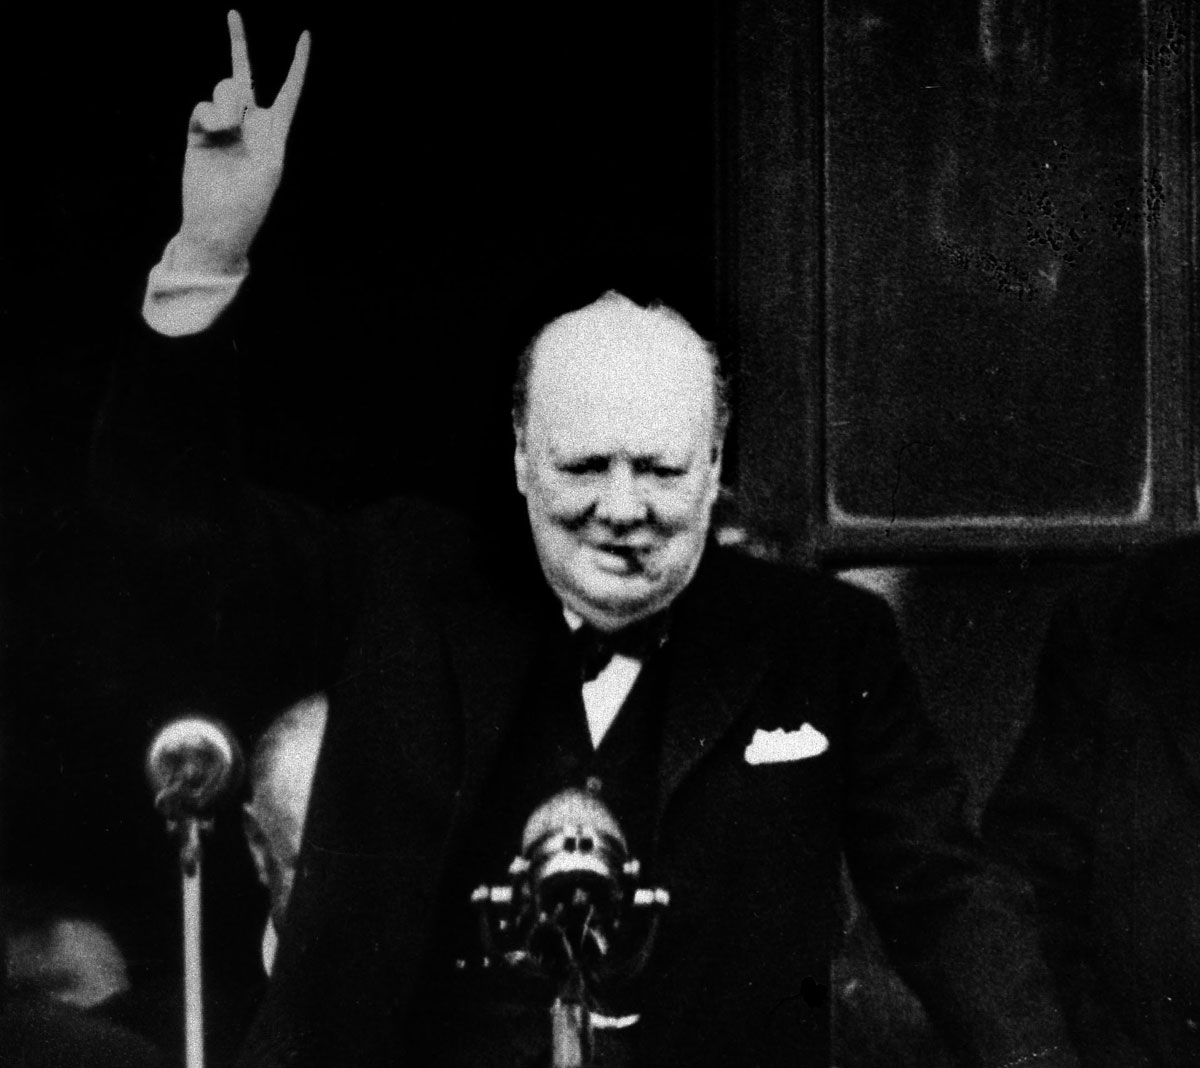 years ago winston churchill born in bathroom lighting